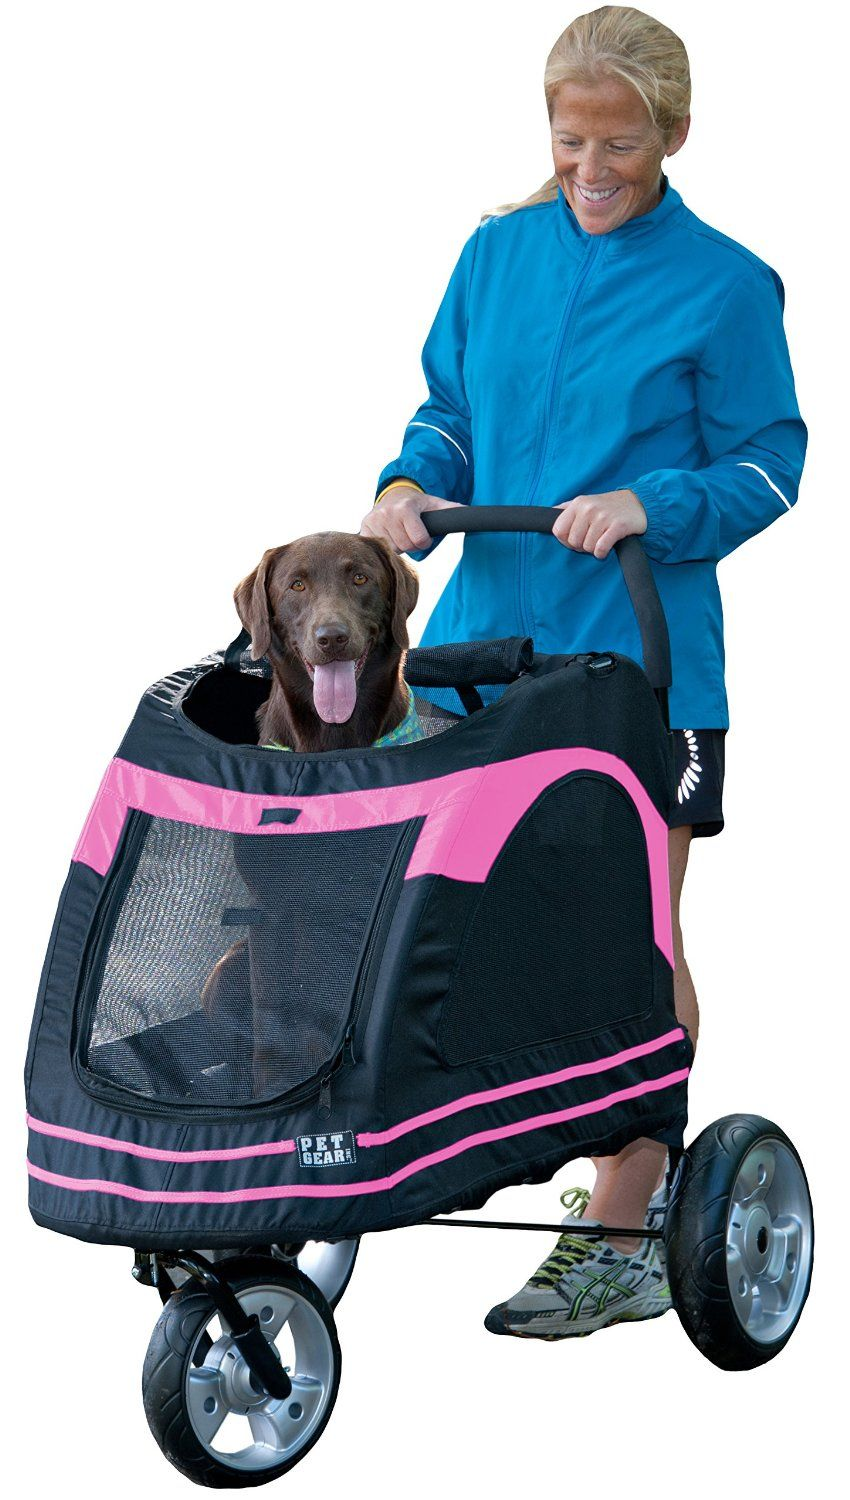 Pet Gear Roadster Pet Stroller for Cats and Dogs ** Hurry